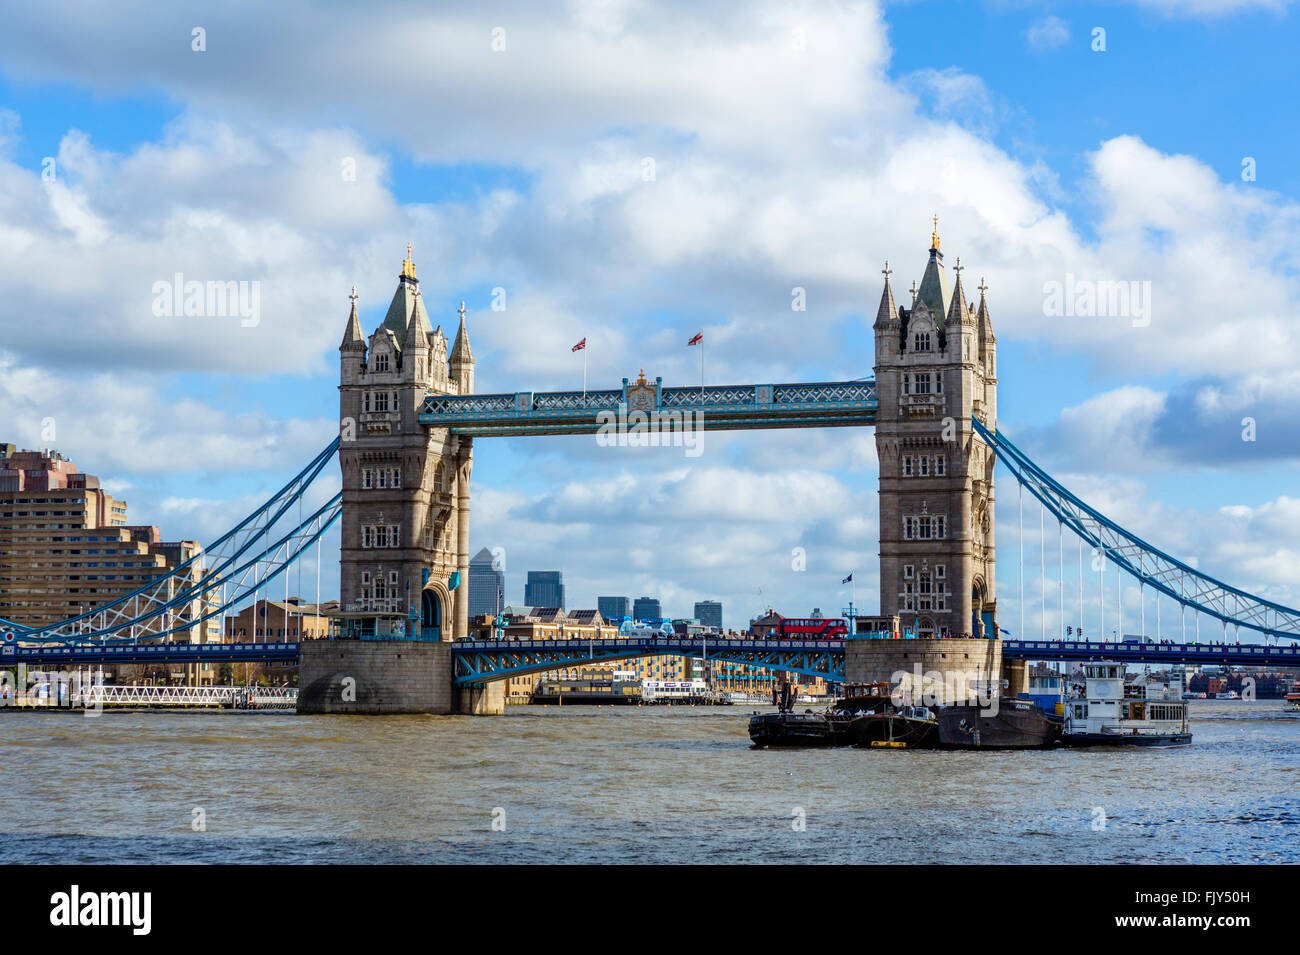 Tower Bridge from the South Bank with the skyscrapers of Canary Wharf in the distance, London, England, UK - Stock Image